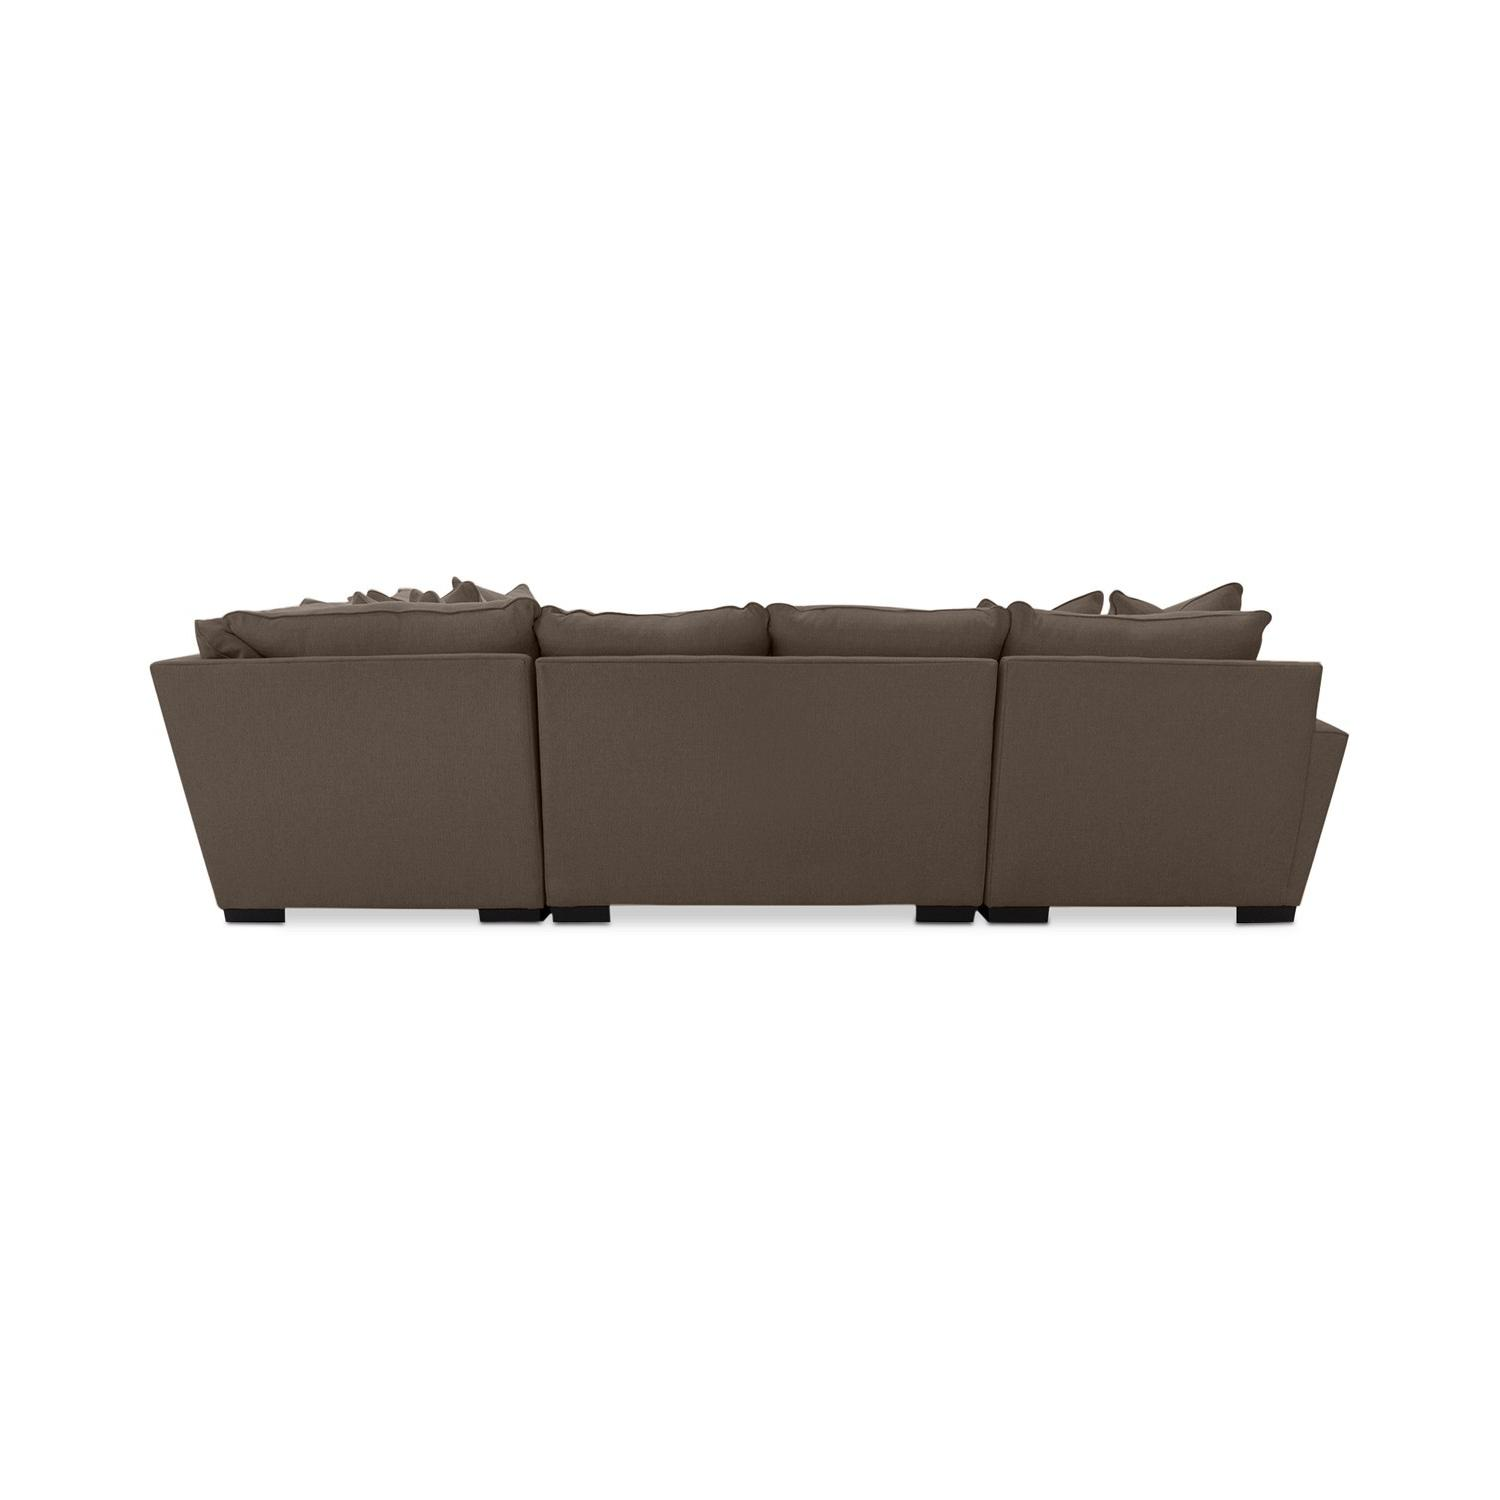 Macy's Ainsley 3-Piece Fabric Chaise Sectional Sofa - image-2